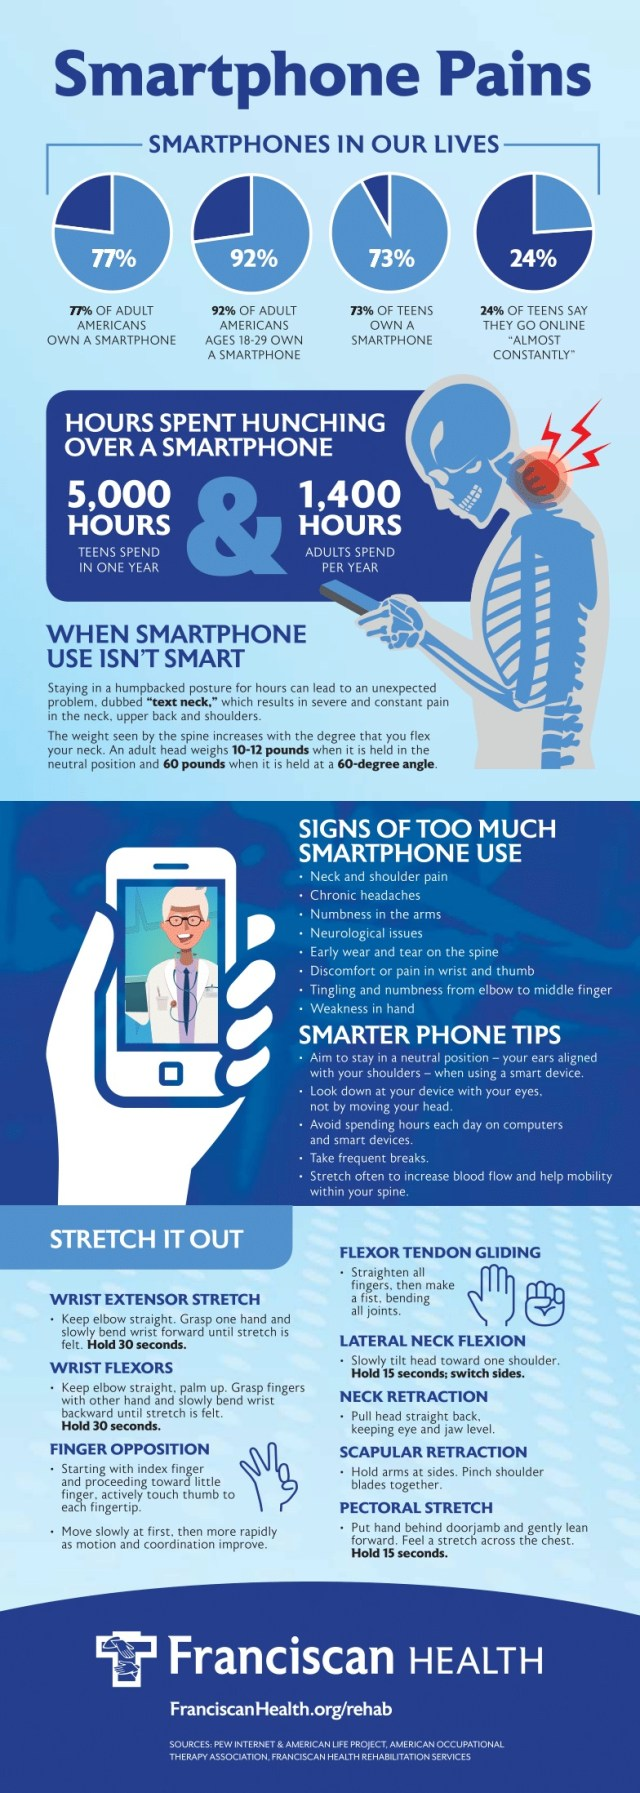 Smartphone Pains info